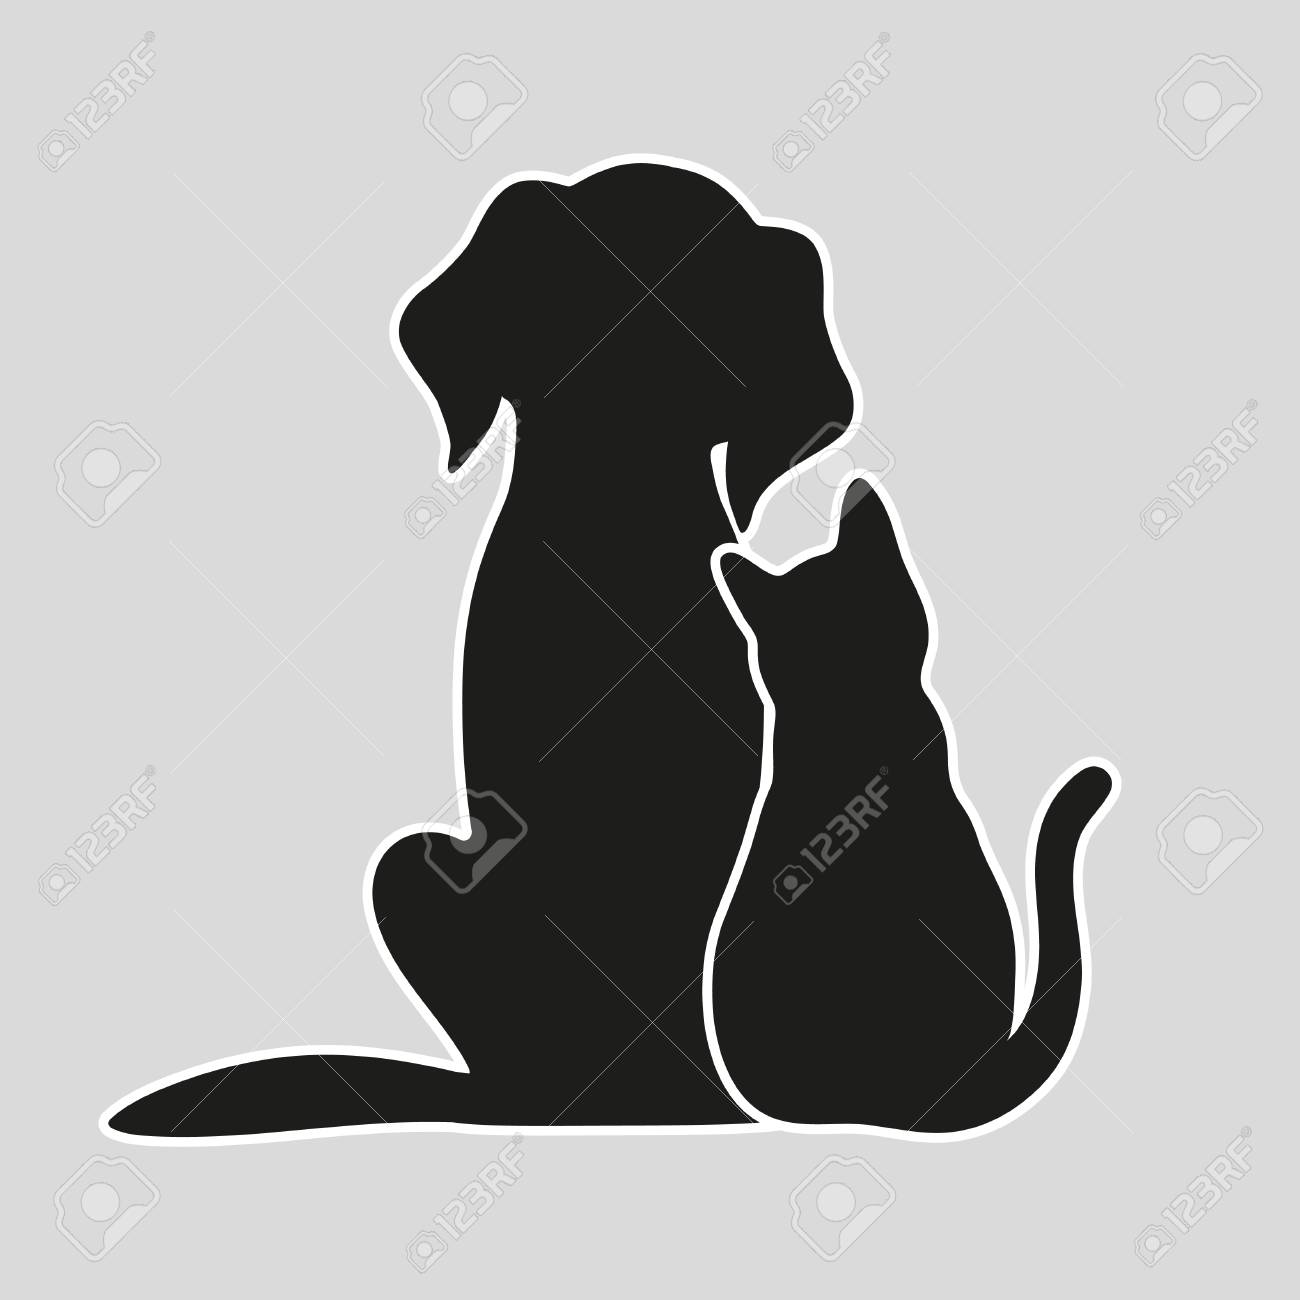 Cat and dog on a gray background - 87861826